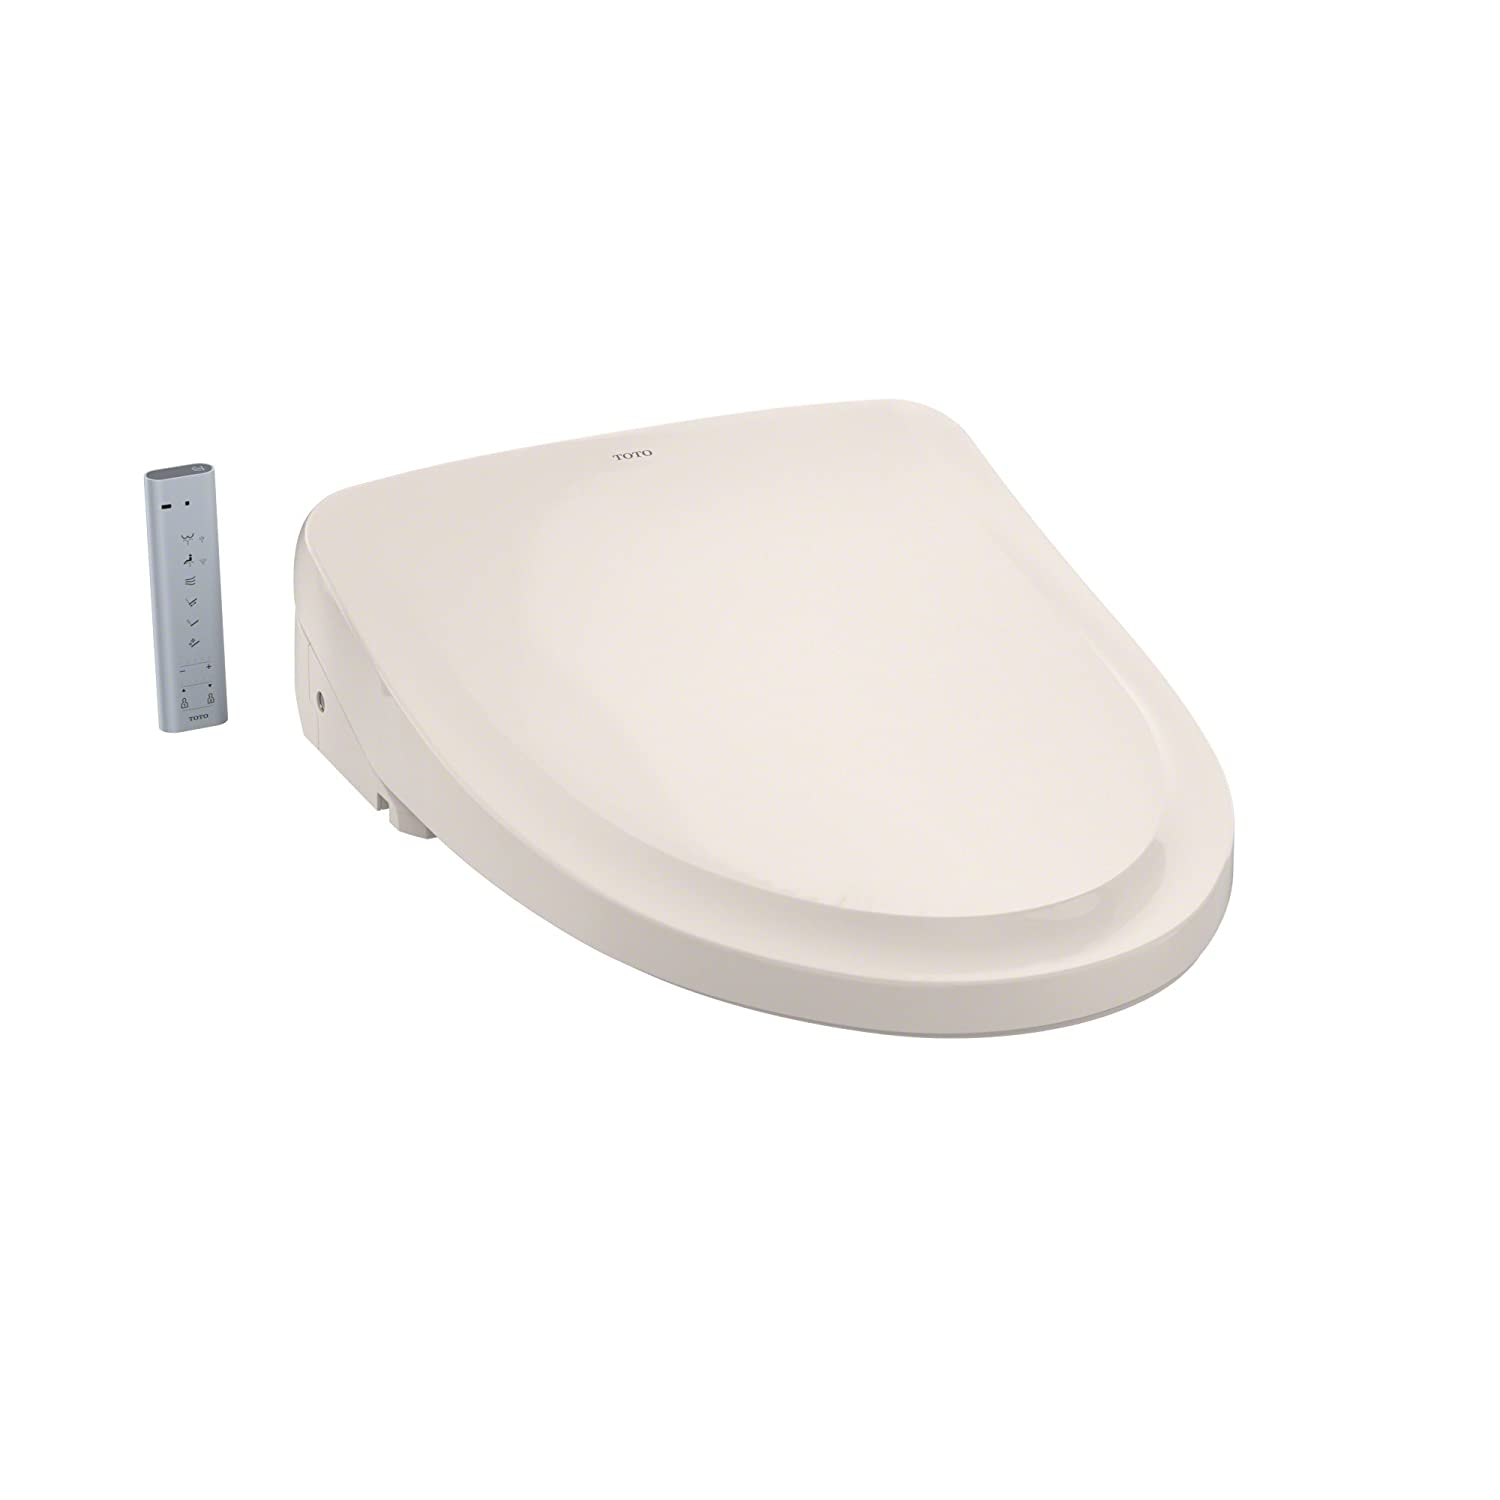 Toto Sw3054 12 S550e Washlet Electronic Bidet Toilet Seat With